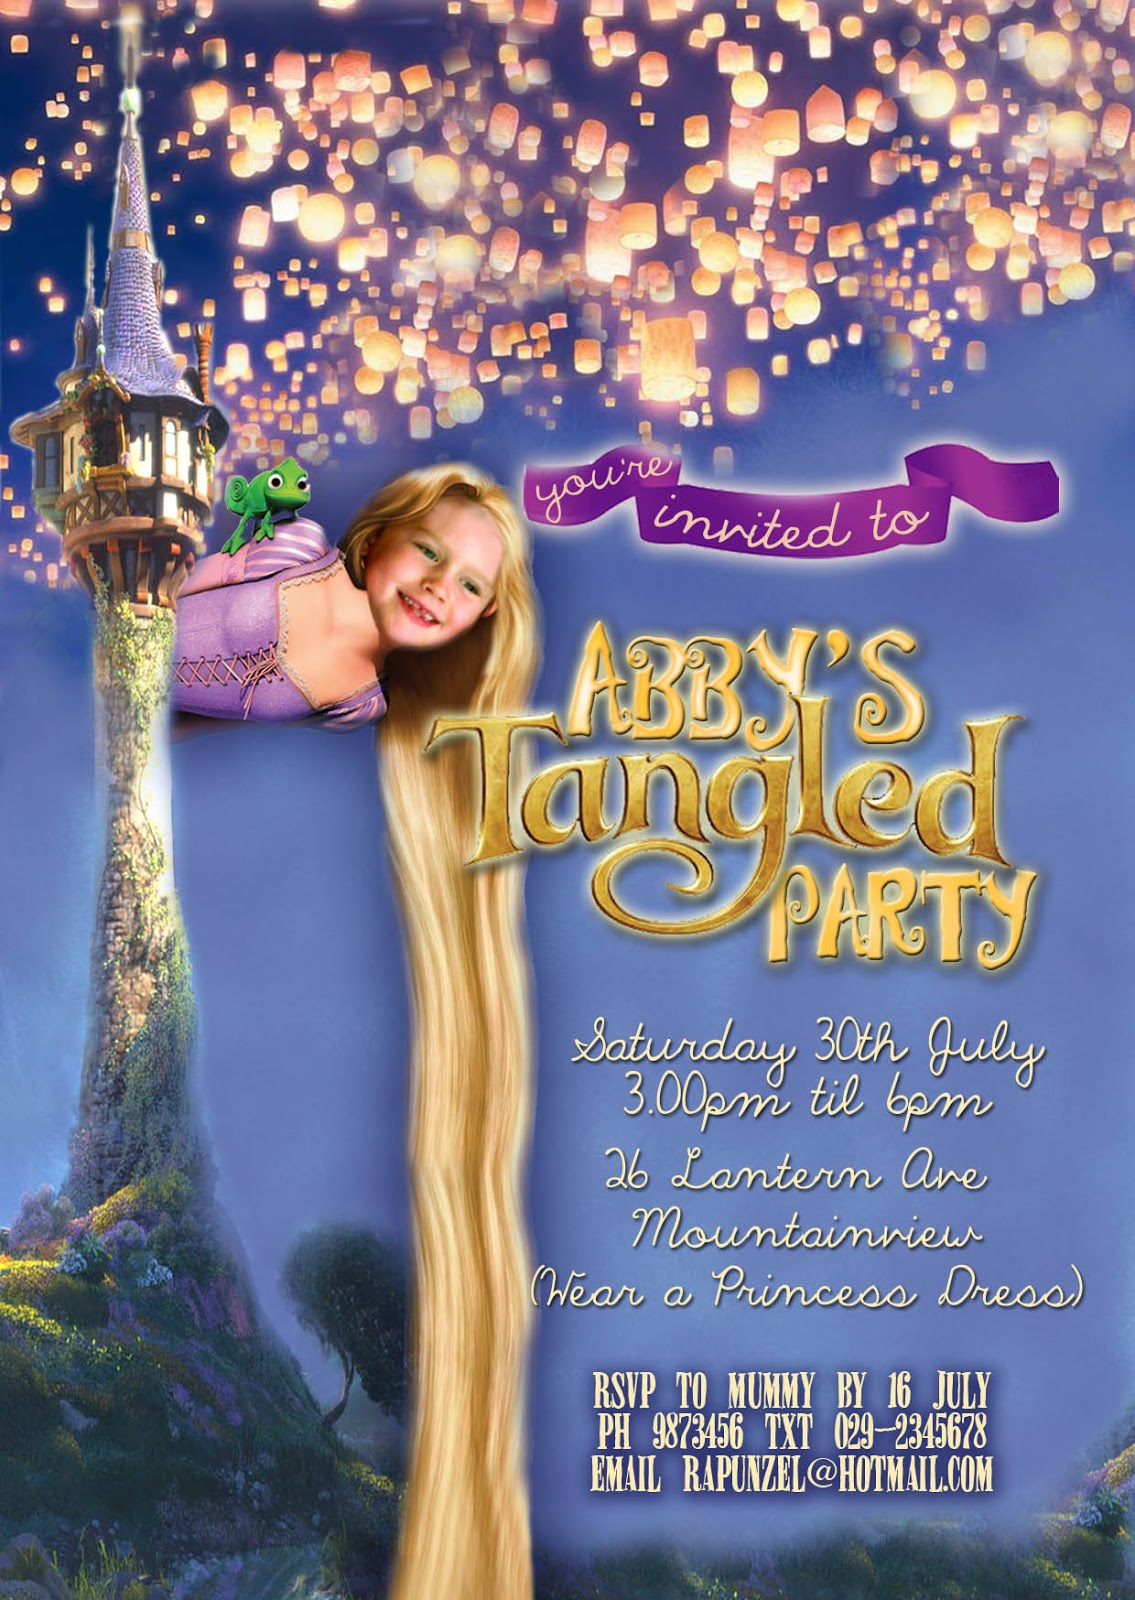 FREE Kids Party Invitations: Tangled Party Invitation